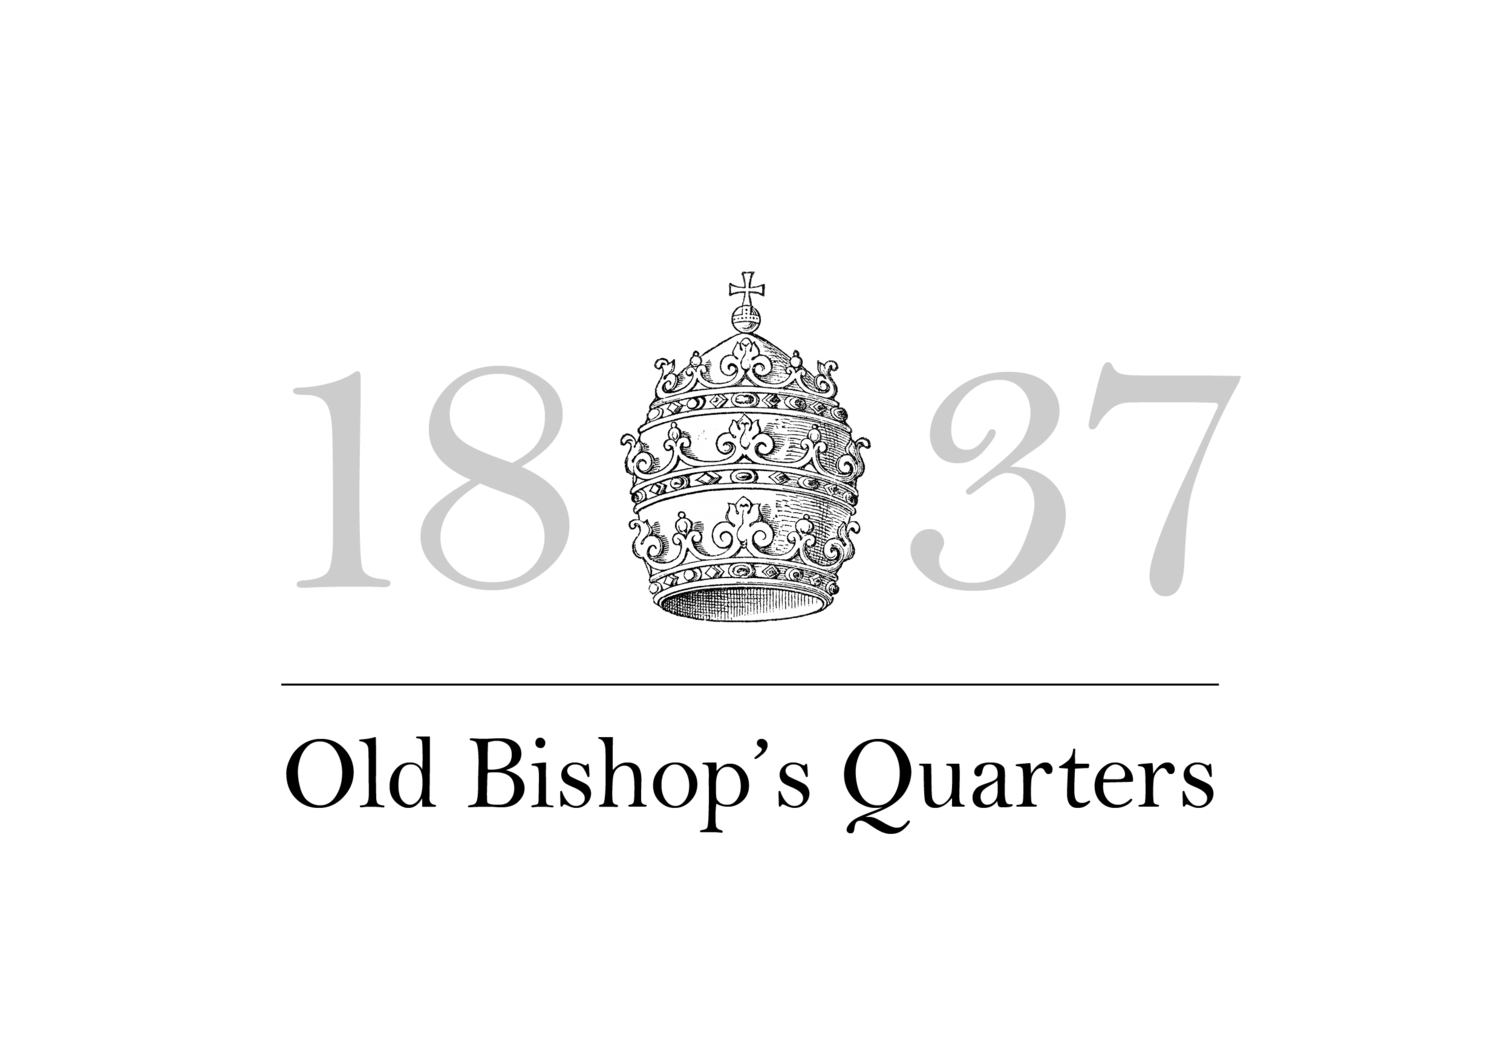 Old Bishop's Quarters